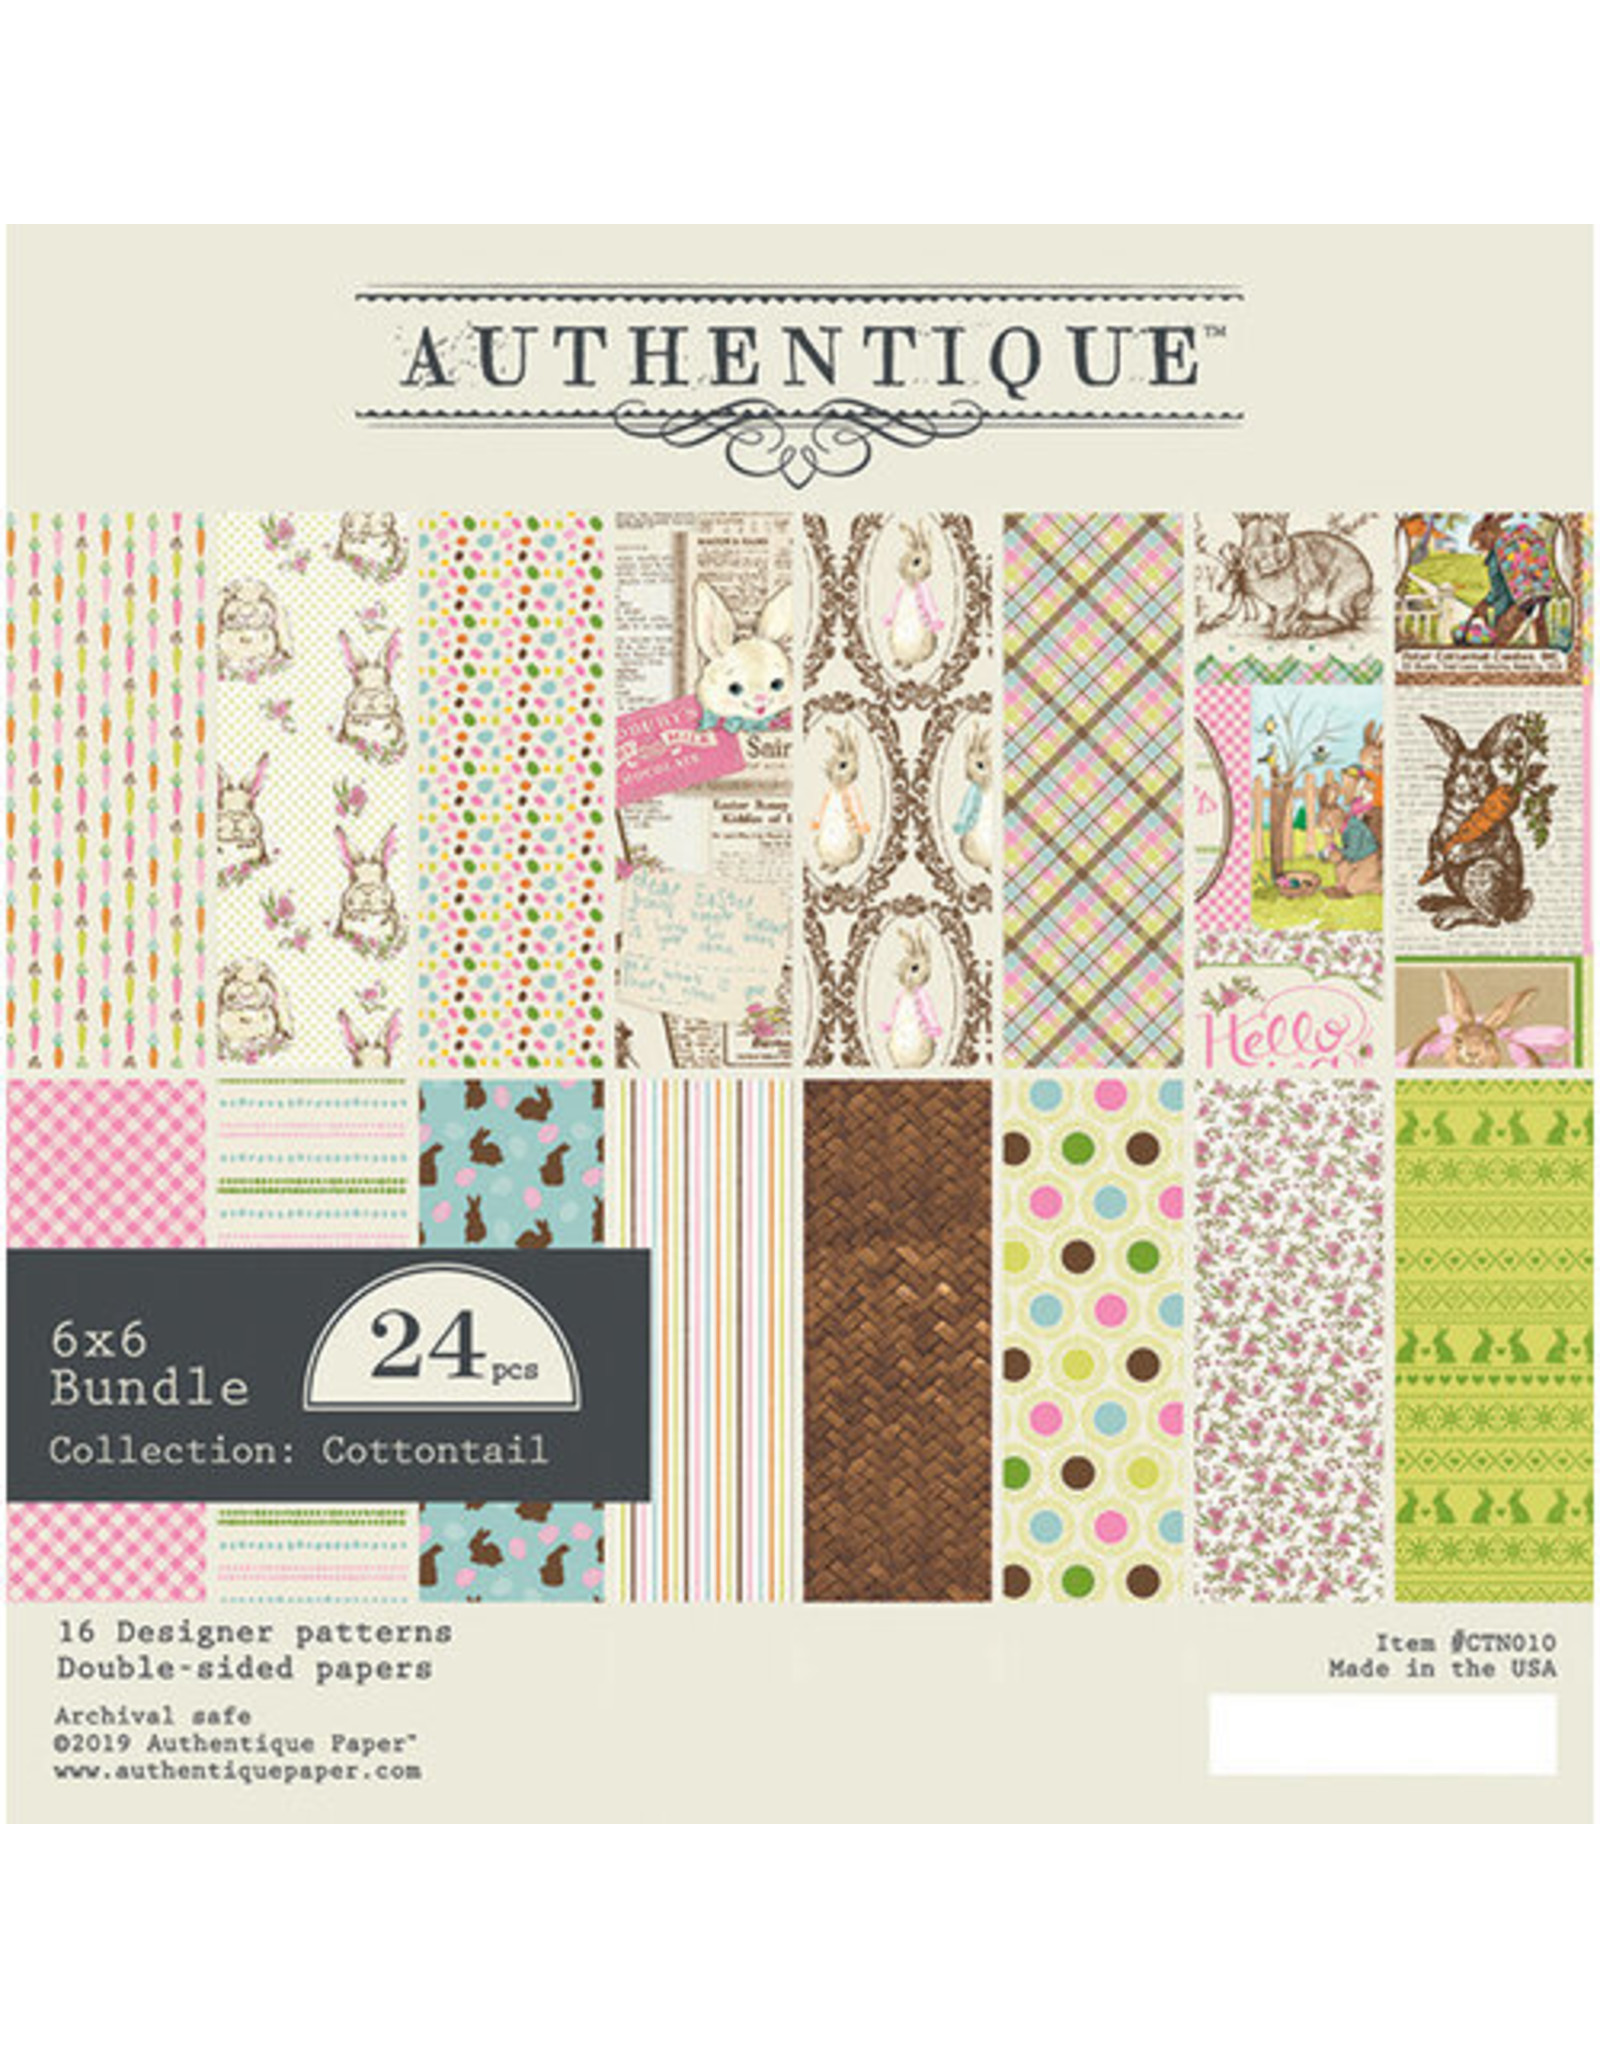 Authentique Cottontail - 6x6 Paper Bundle